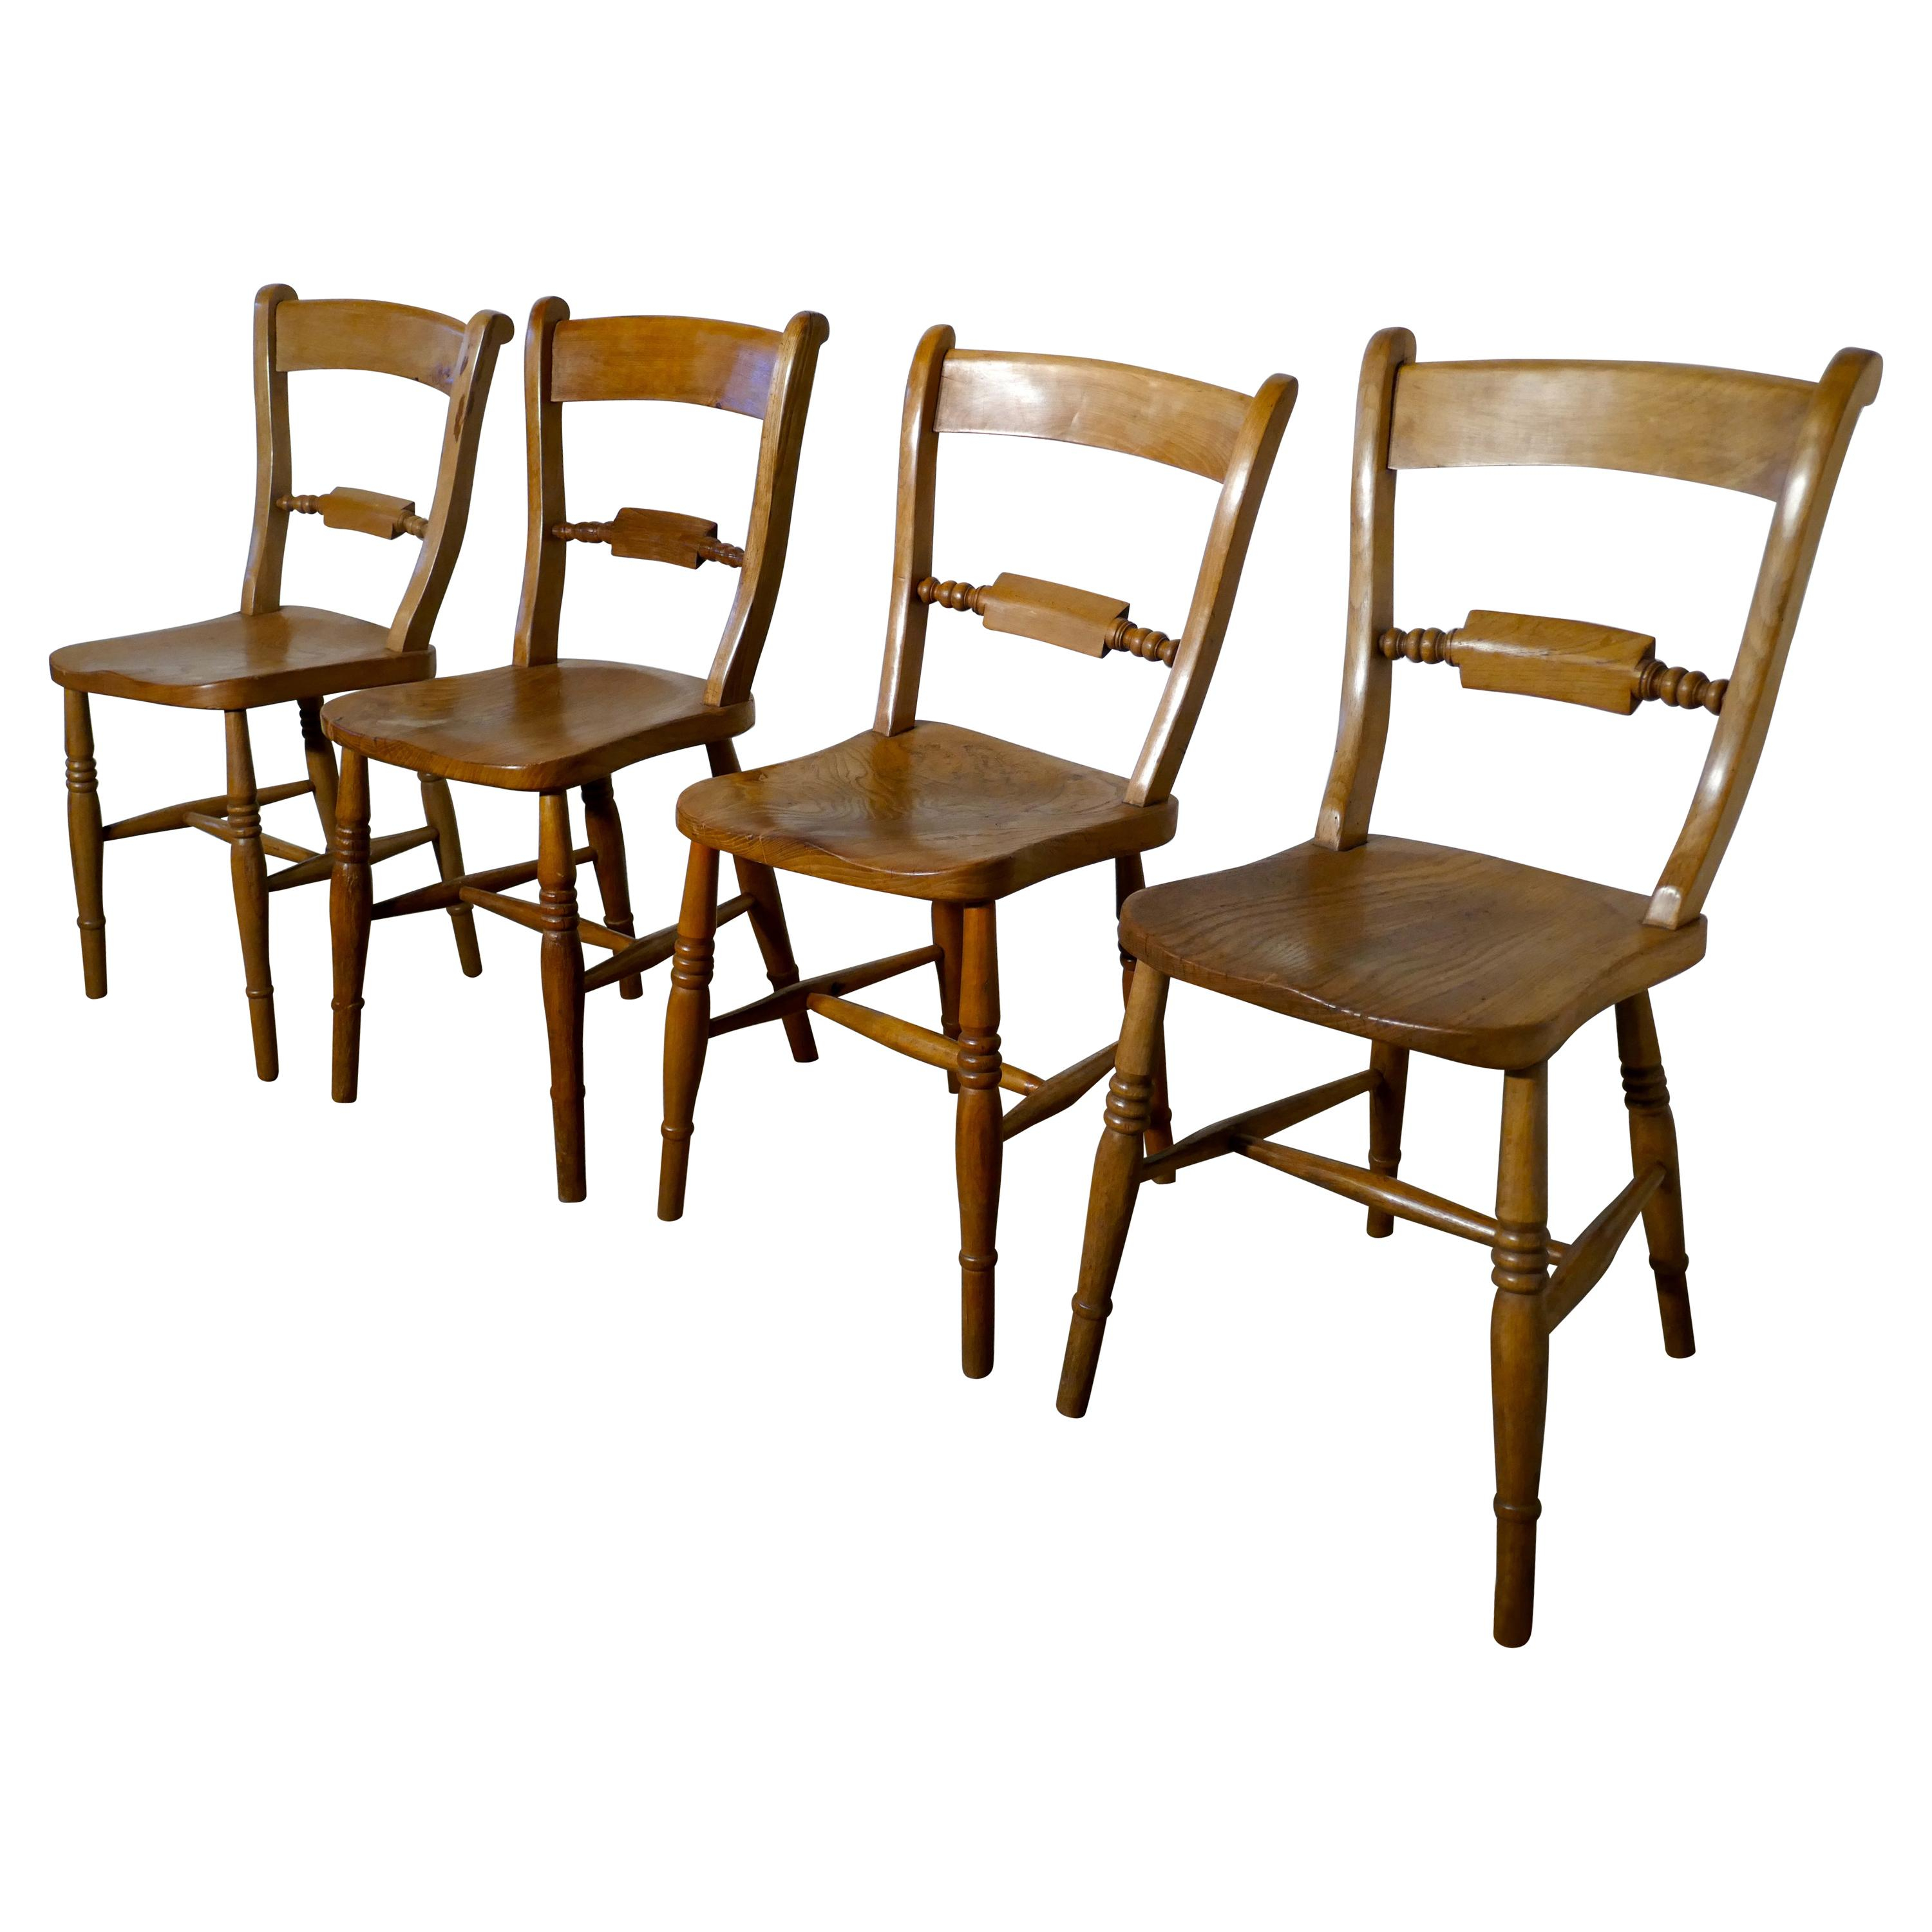 19Th Century Windsor Chairs – 85 For Sale At 1Stdibs In Best And Newest Nutter 3 Piece Dining Sets (Image 1 of 20)